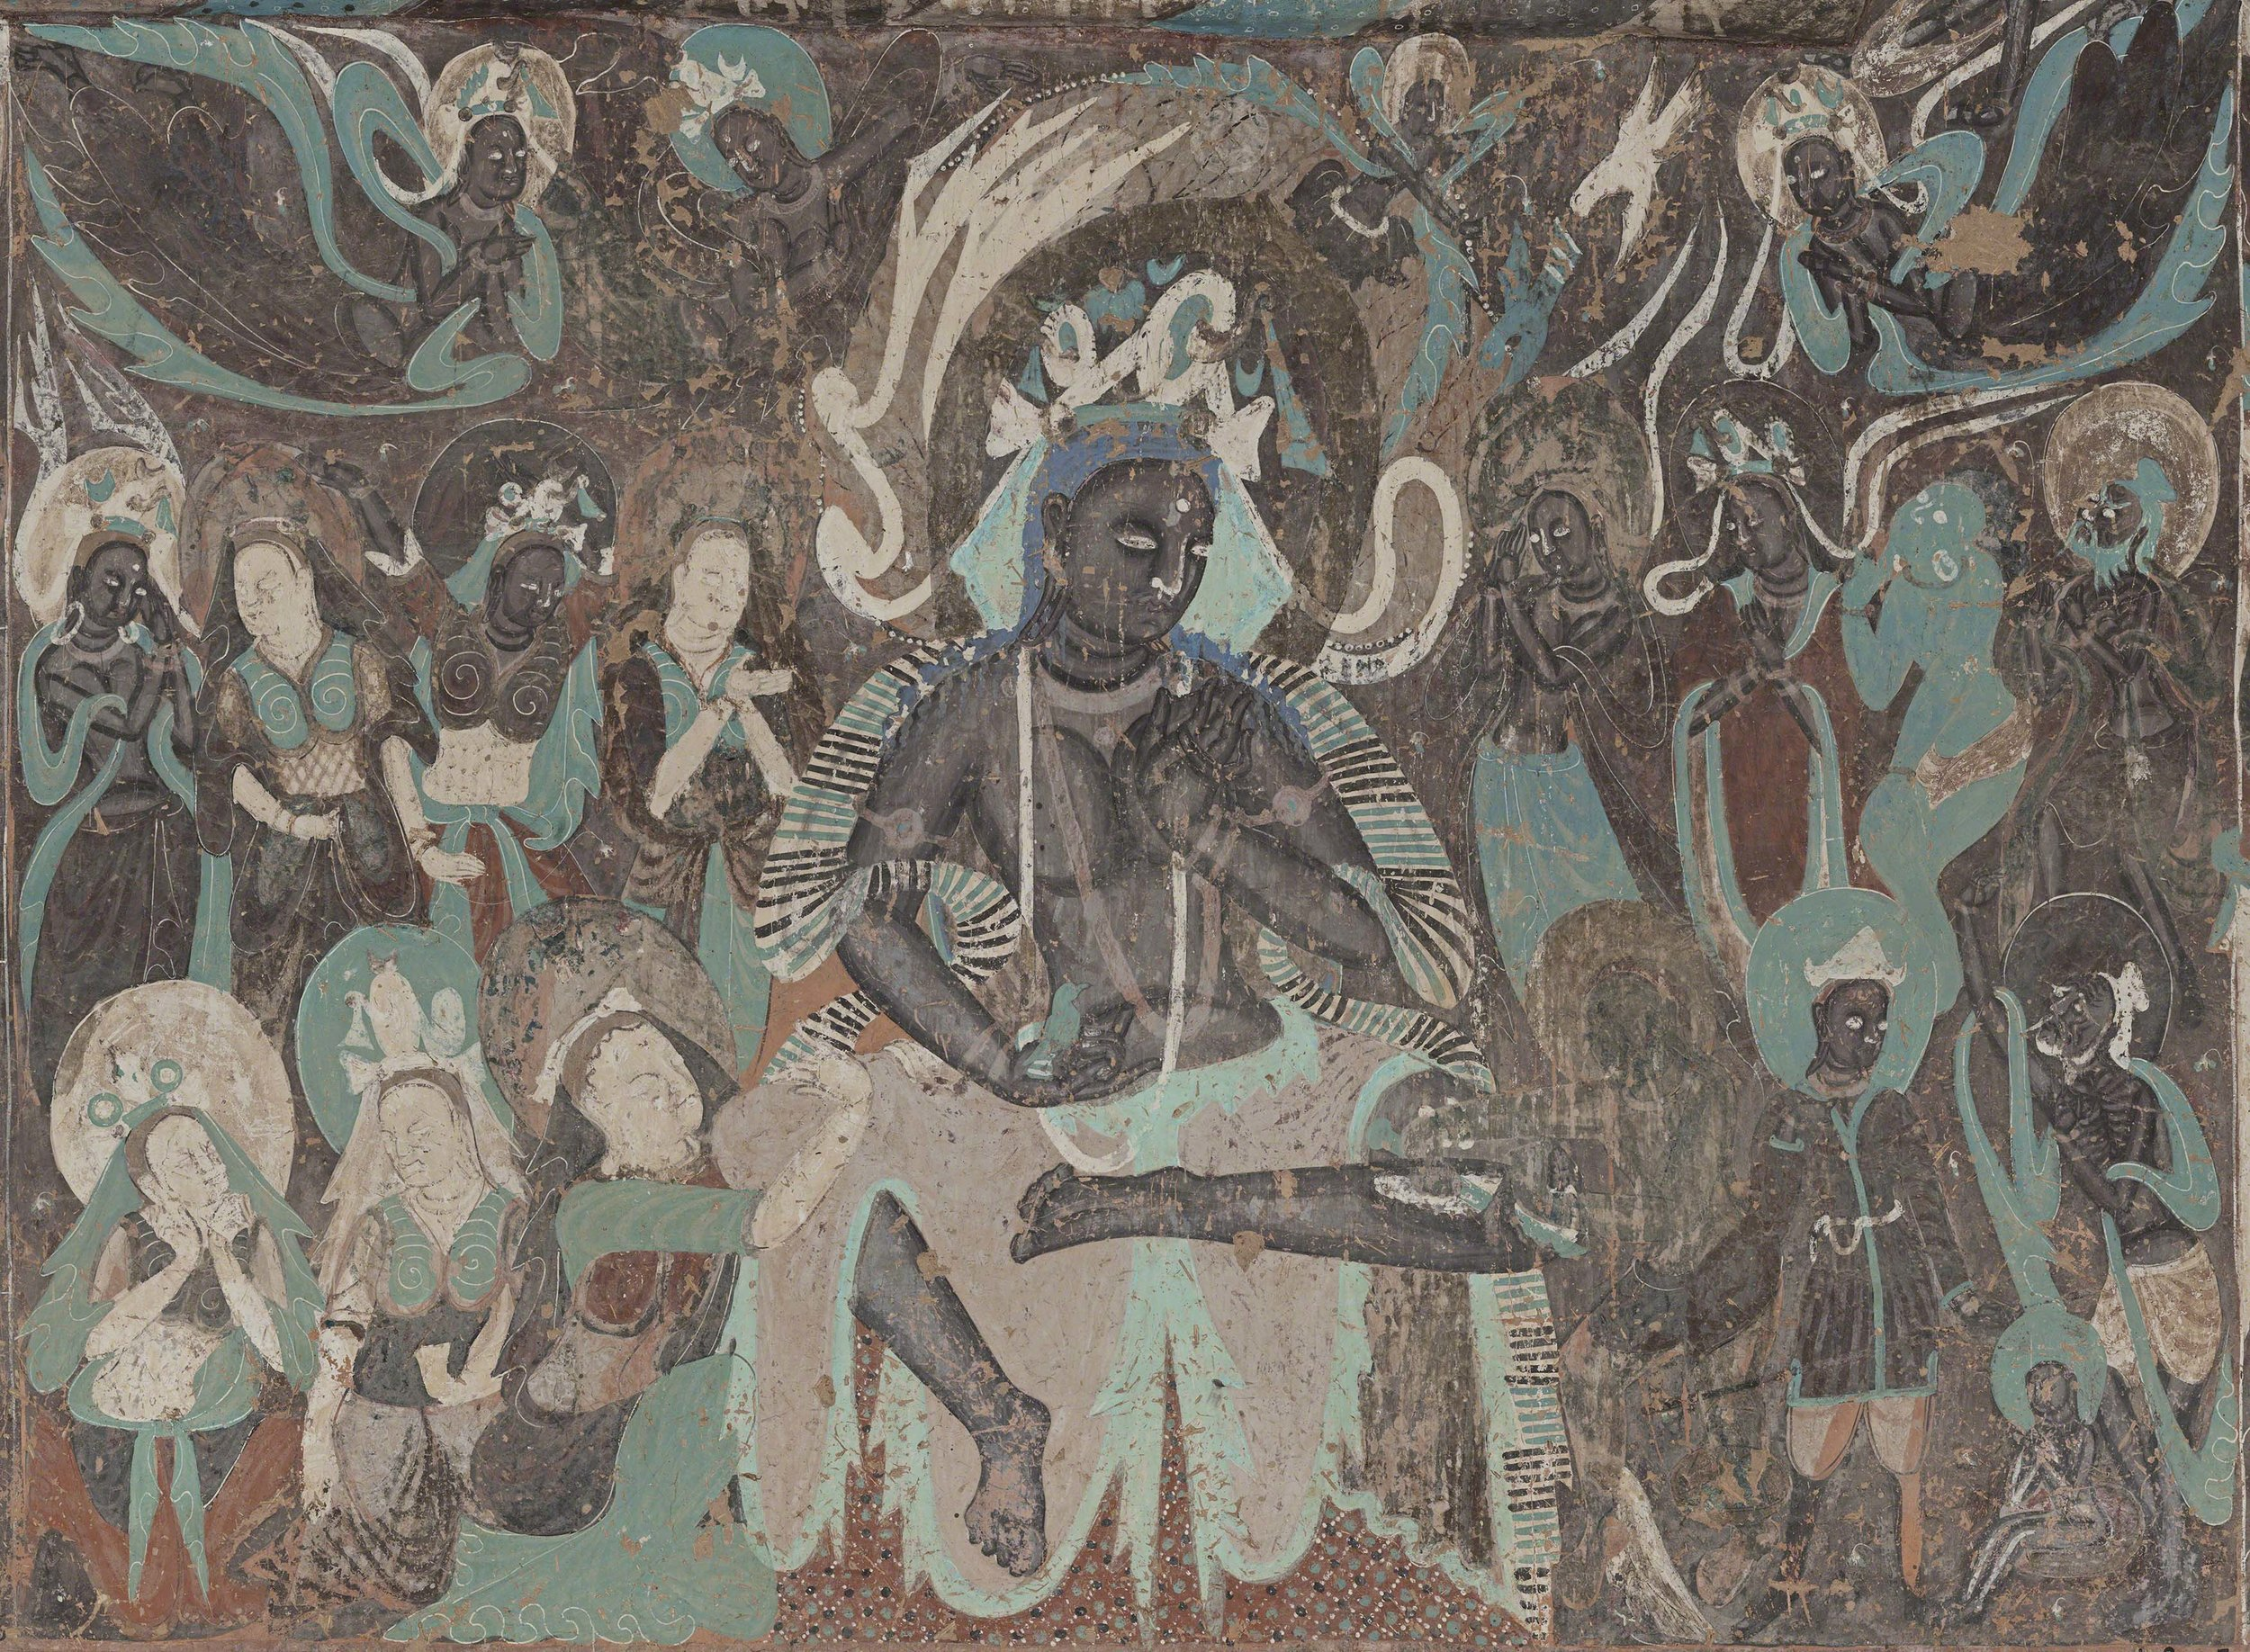 Mural of King Sivi from the north wall of Mogao Cave 254. Dunhuang.439-534 CE. Northern Wei Dynasty. Image Courtesy of the Dunhuang Academy.